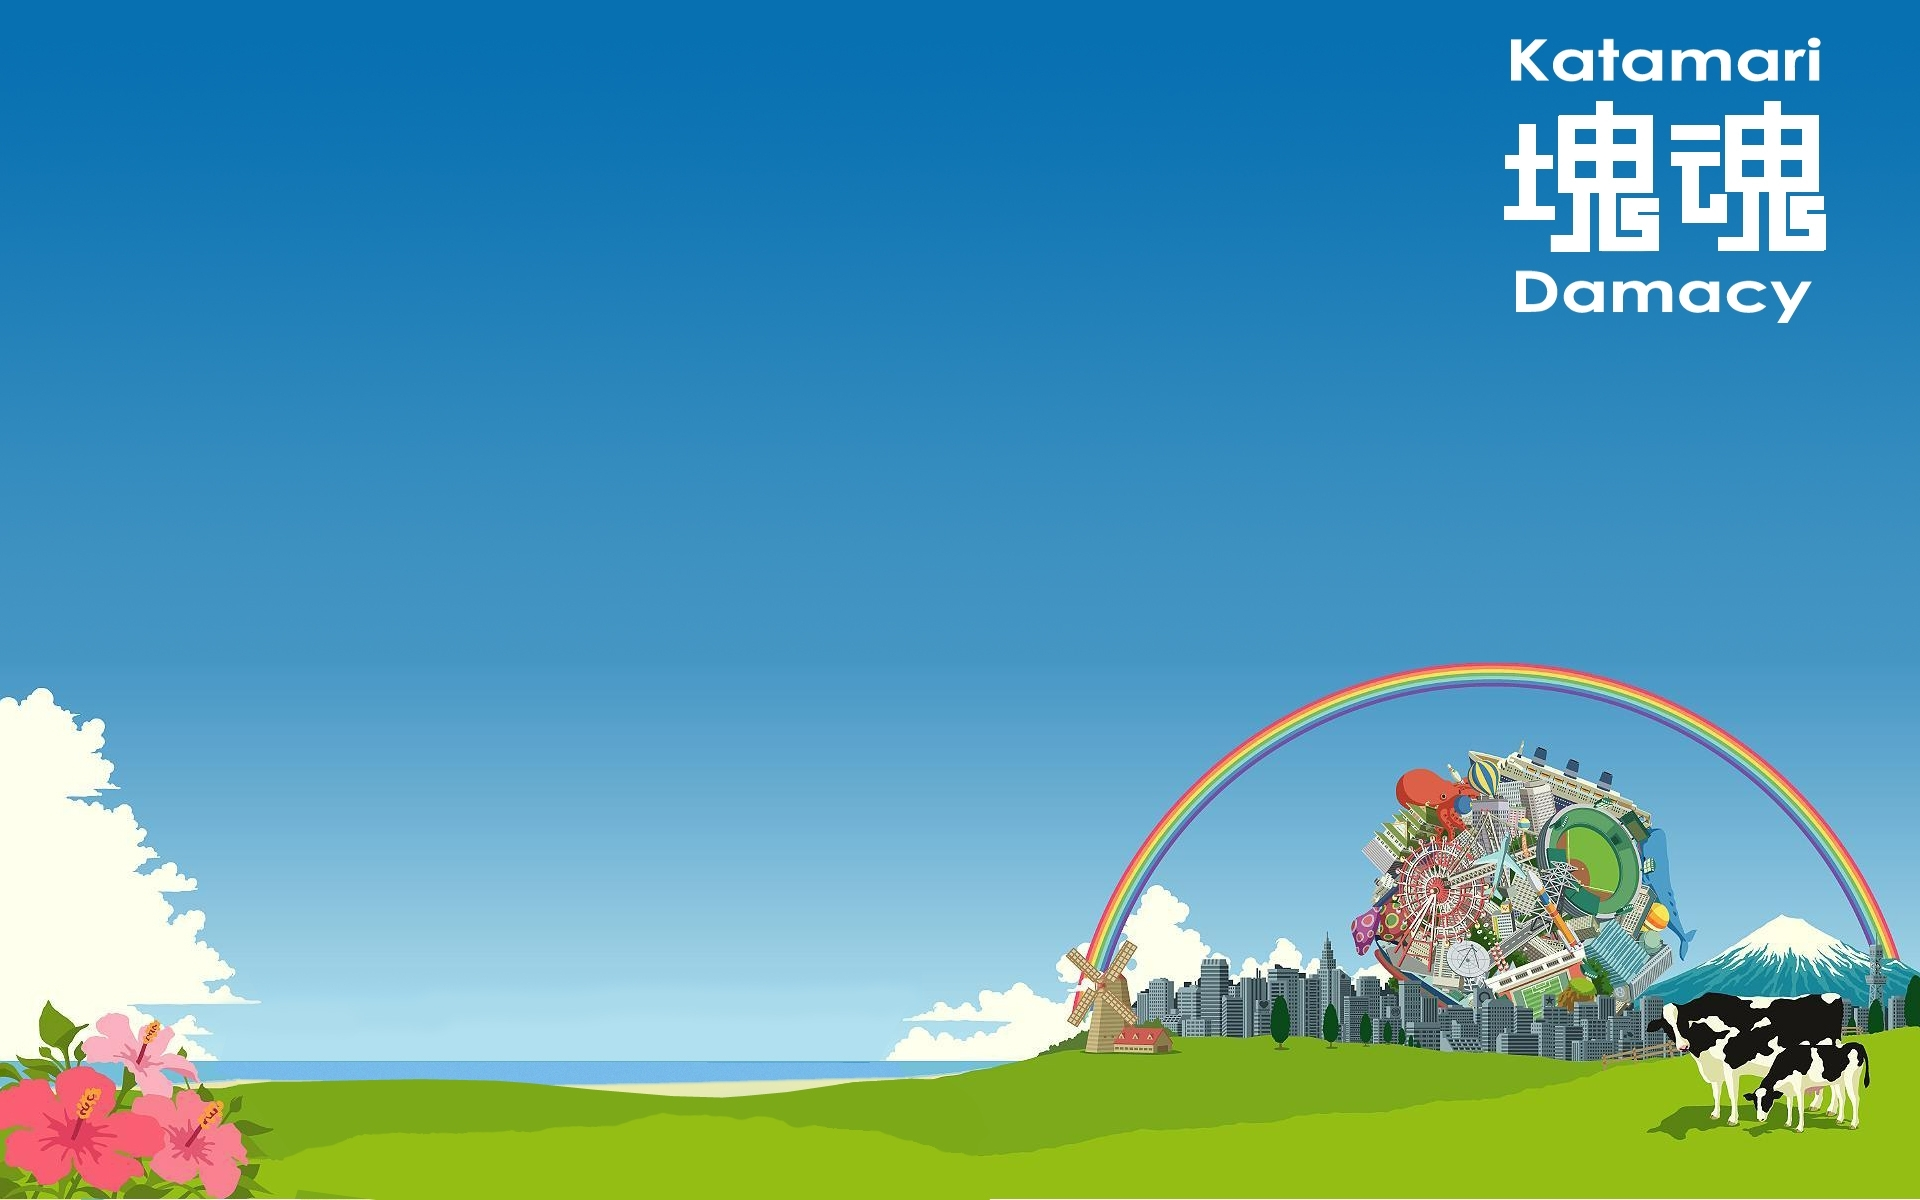 10 Latest Katamari Damacy Wallpaper 1920X1080 FULL HD 1920×1080 For PC Desktop